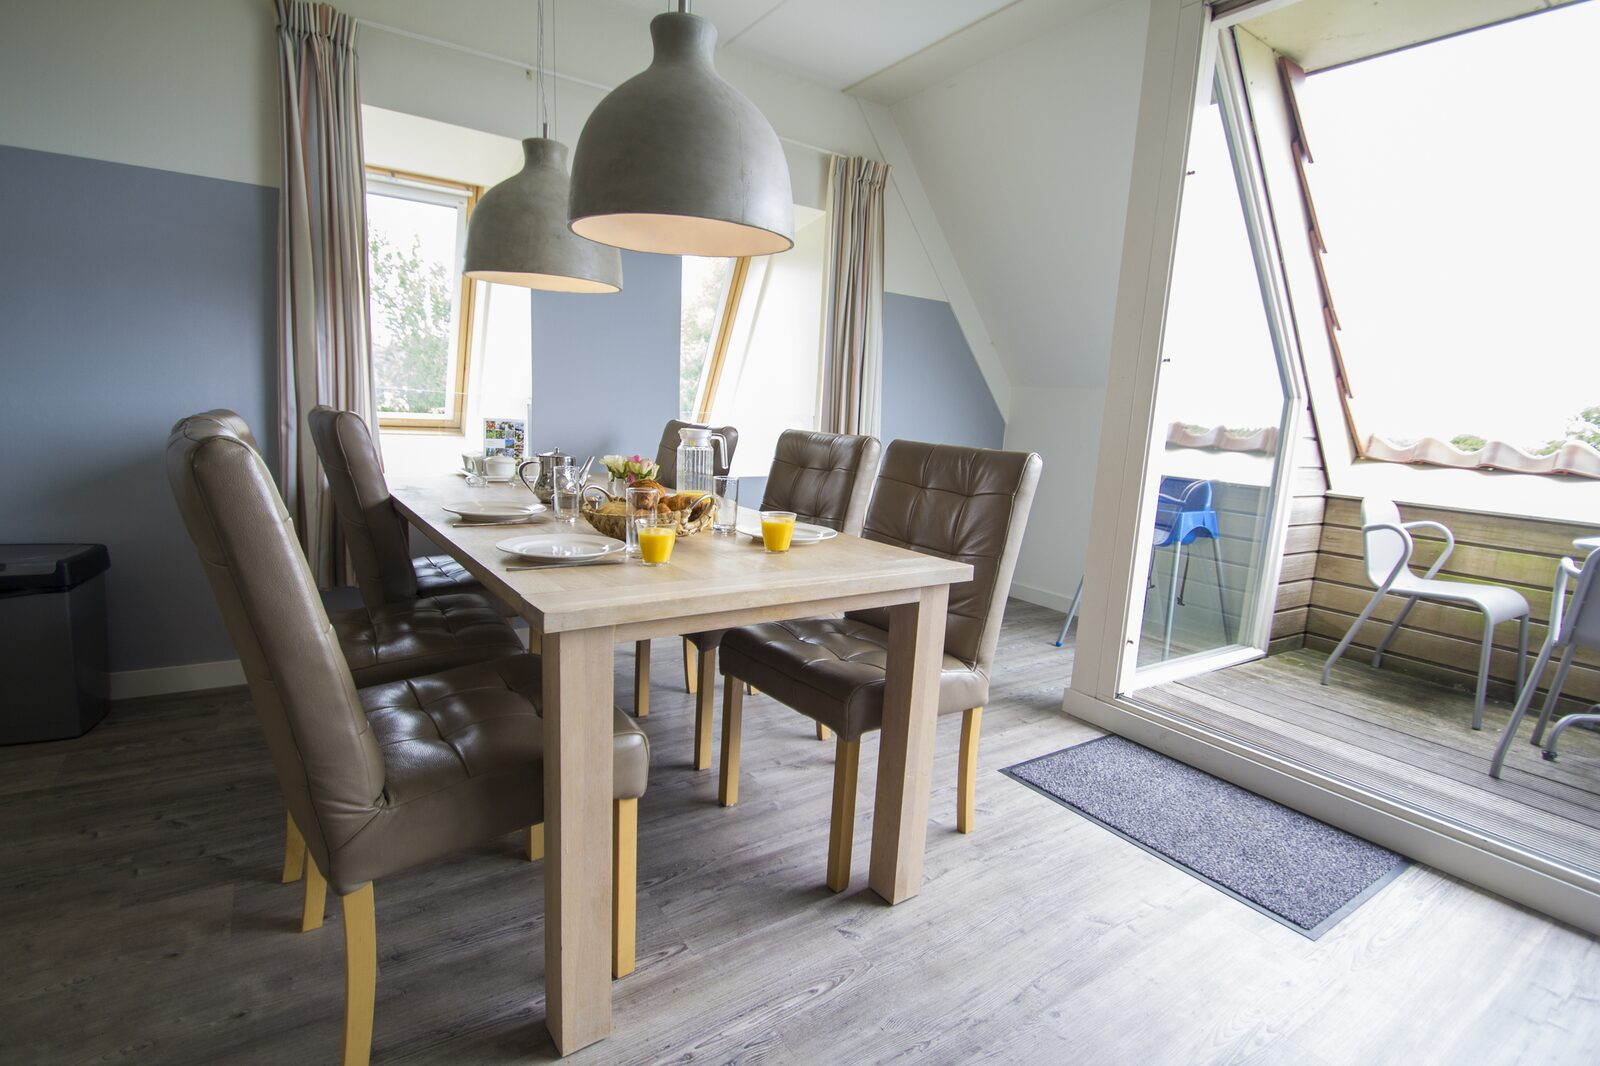 DeLuxe Appartement | 4 Volw. + 2 Kind.